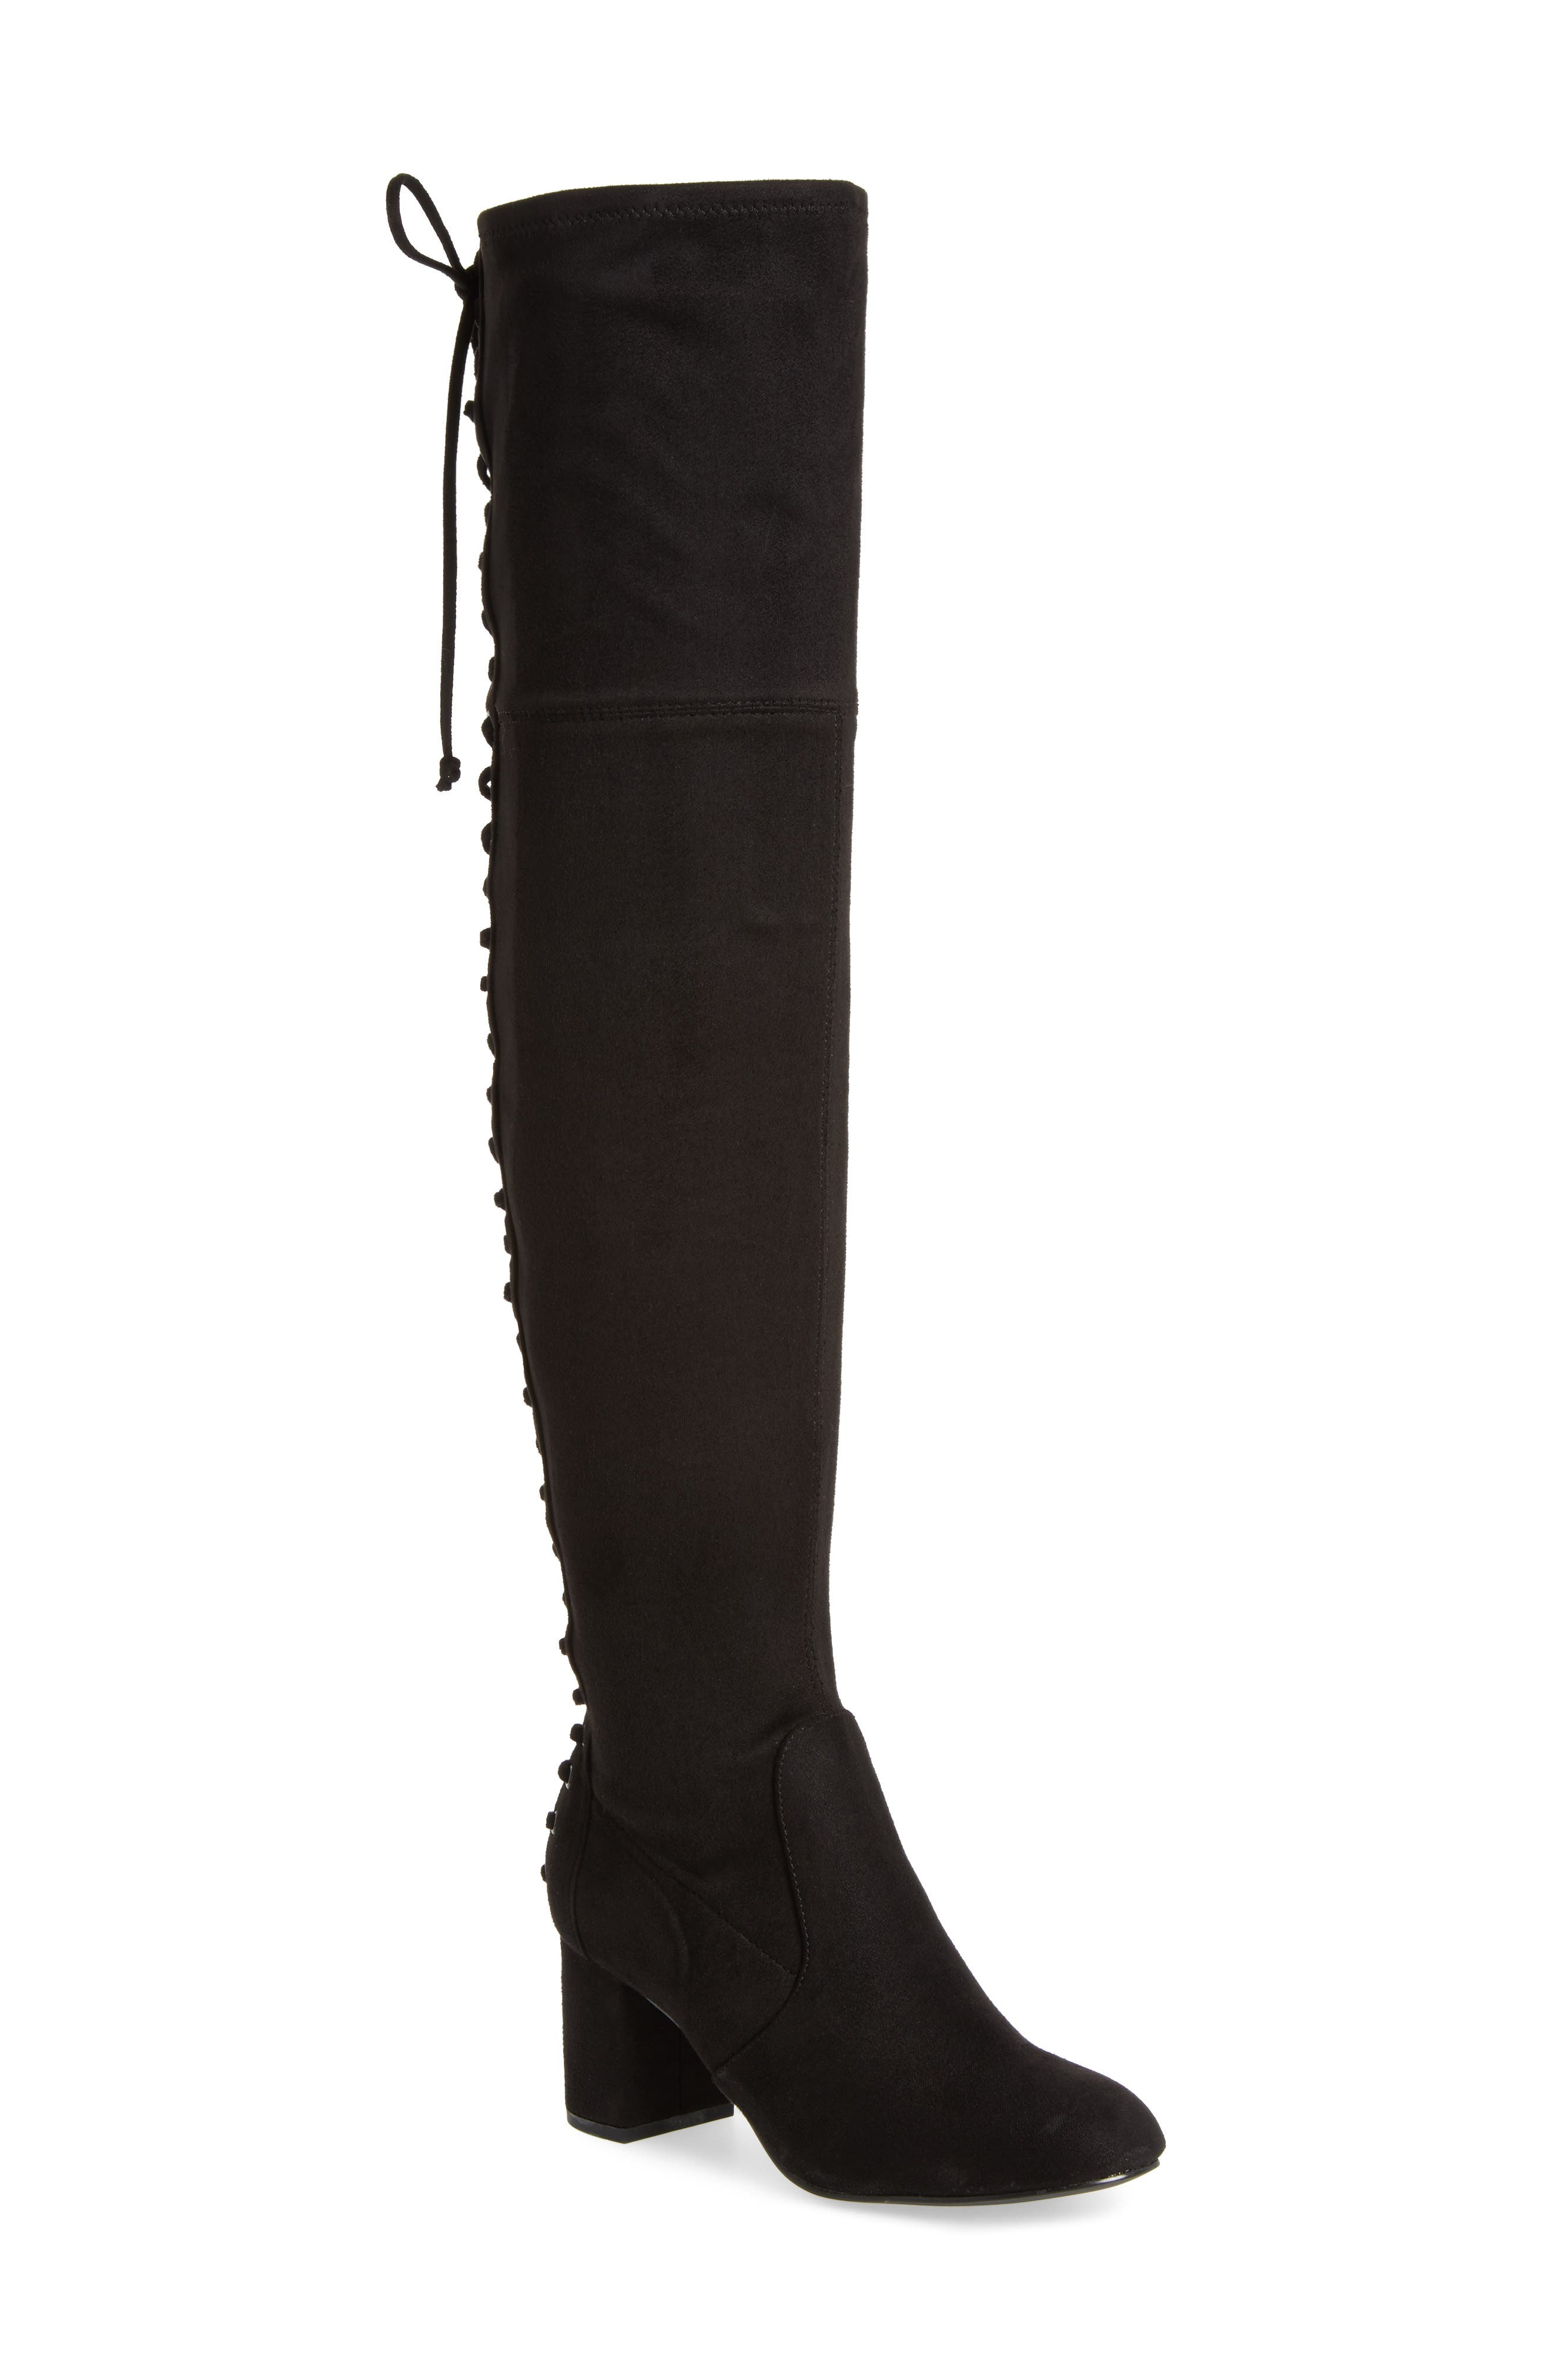 Ollie Over the Knee Boot,                             Main thumbnail 1, color,                             Black Microsuede